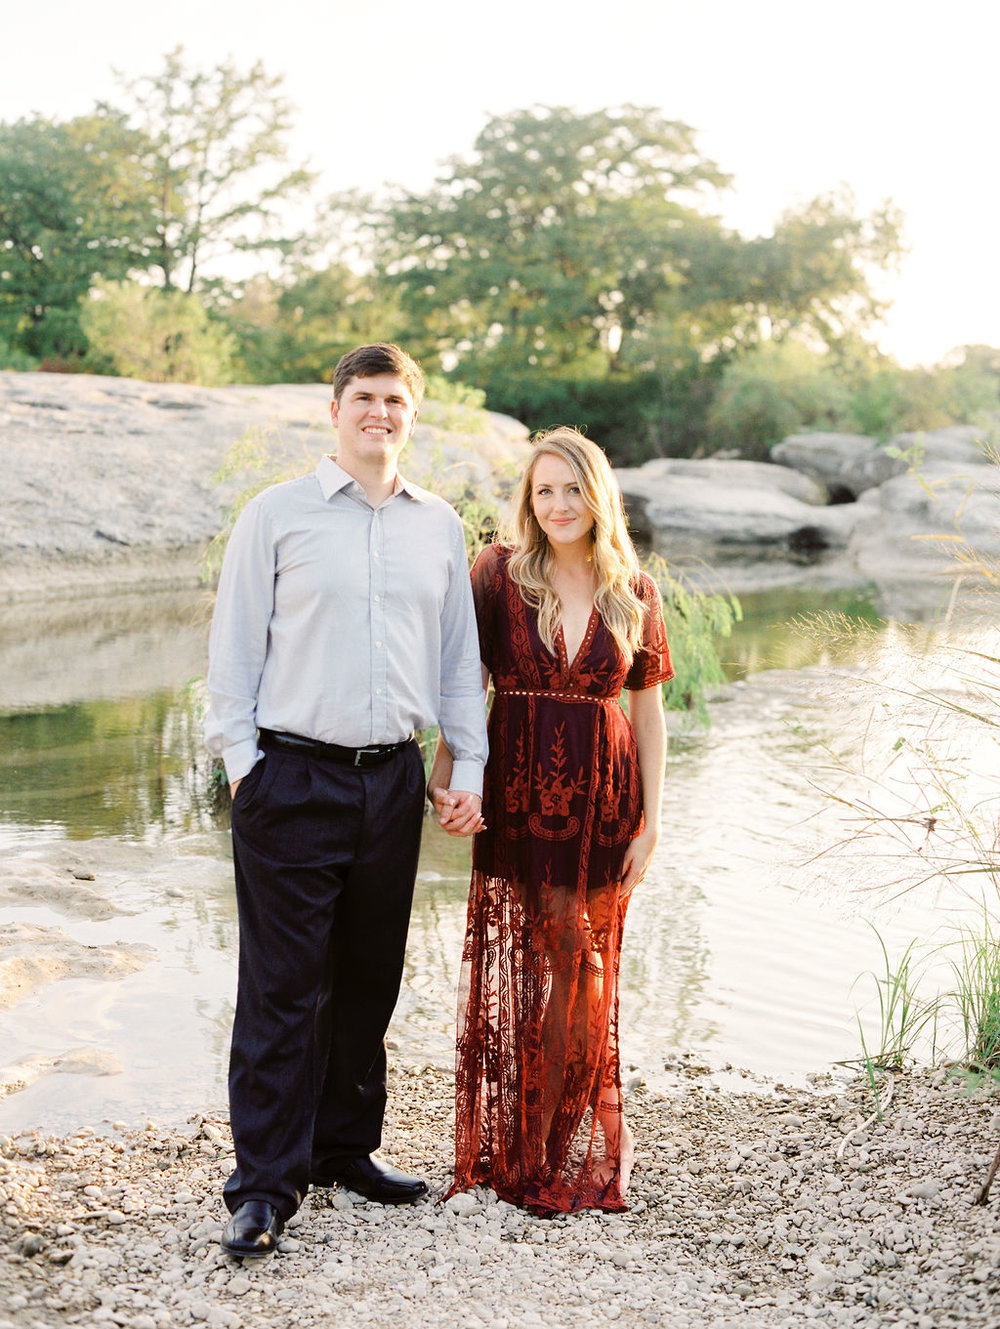 Austin-Film-Wedding-Engagement-Photographer-McKinney-Falls-19.jpg